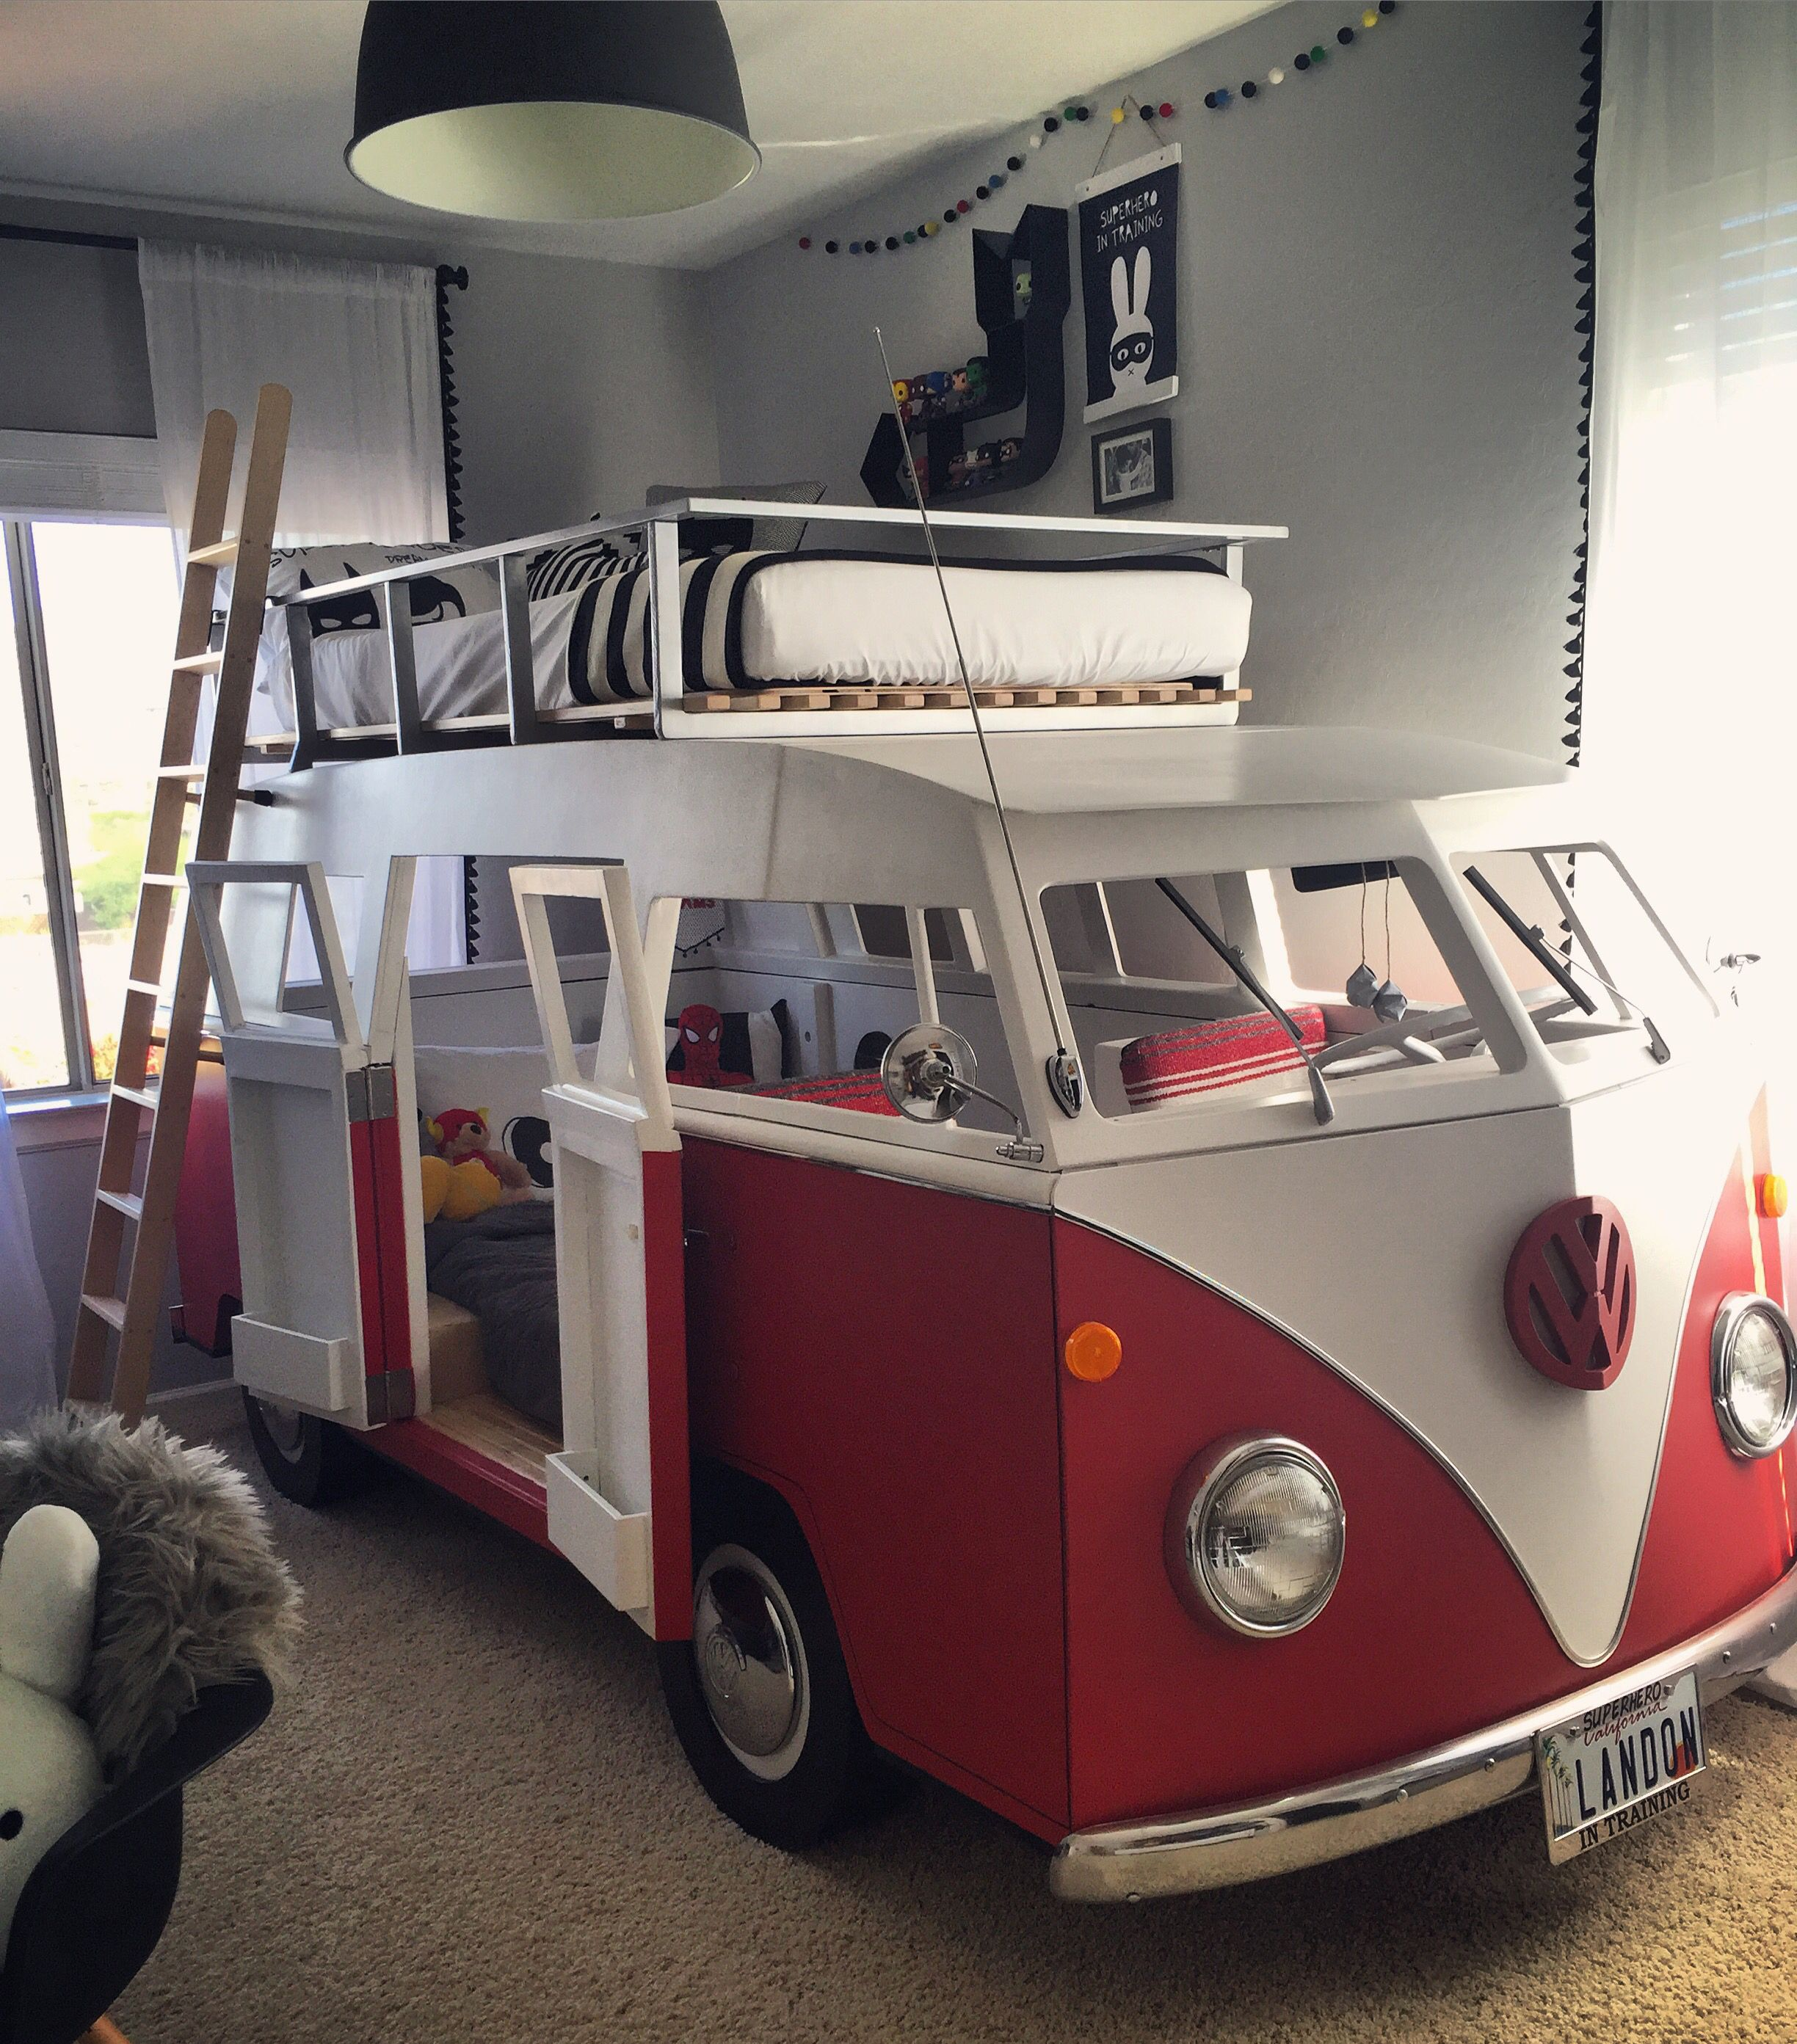 Vw Bus Camping Van Bunk Bed Retro Vintage Modern Designed And Built By Landon S Daddy Complete With Working Headlights Bunk Beds Kids Room Design Van Bed